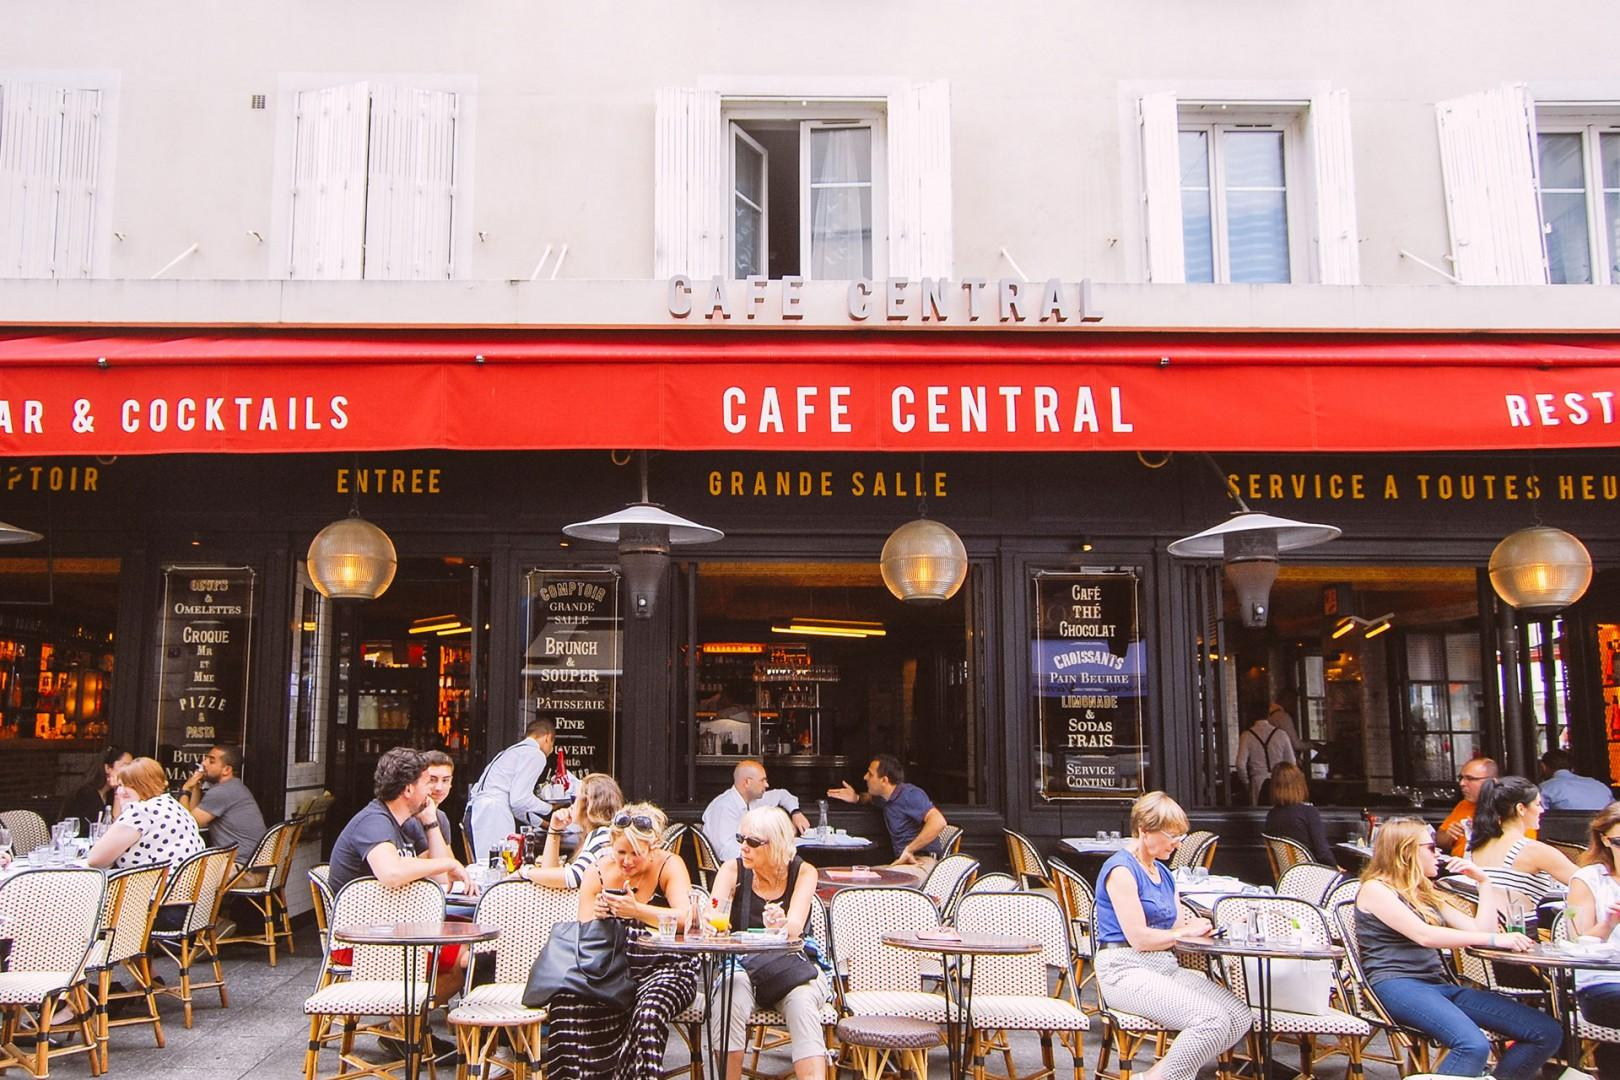 Soak in the atmosphere in a local cafe.